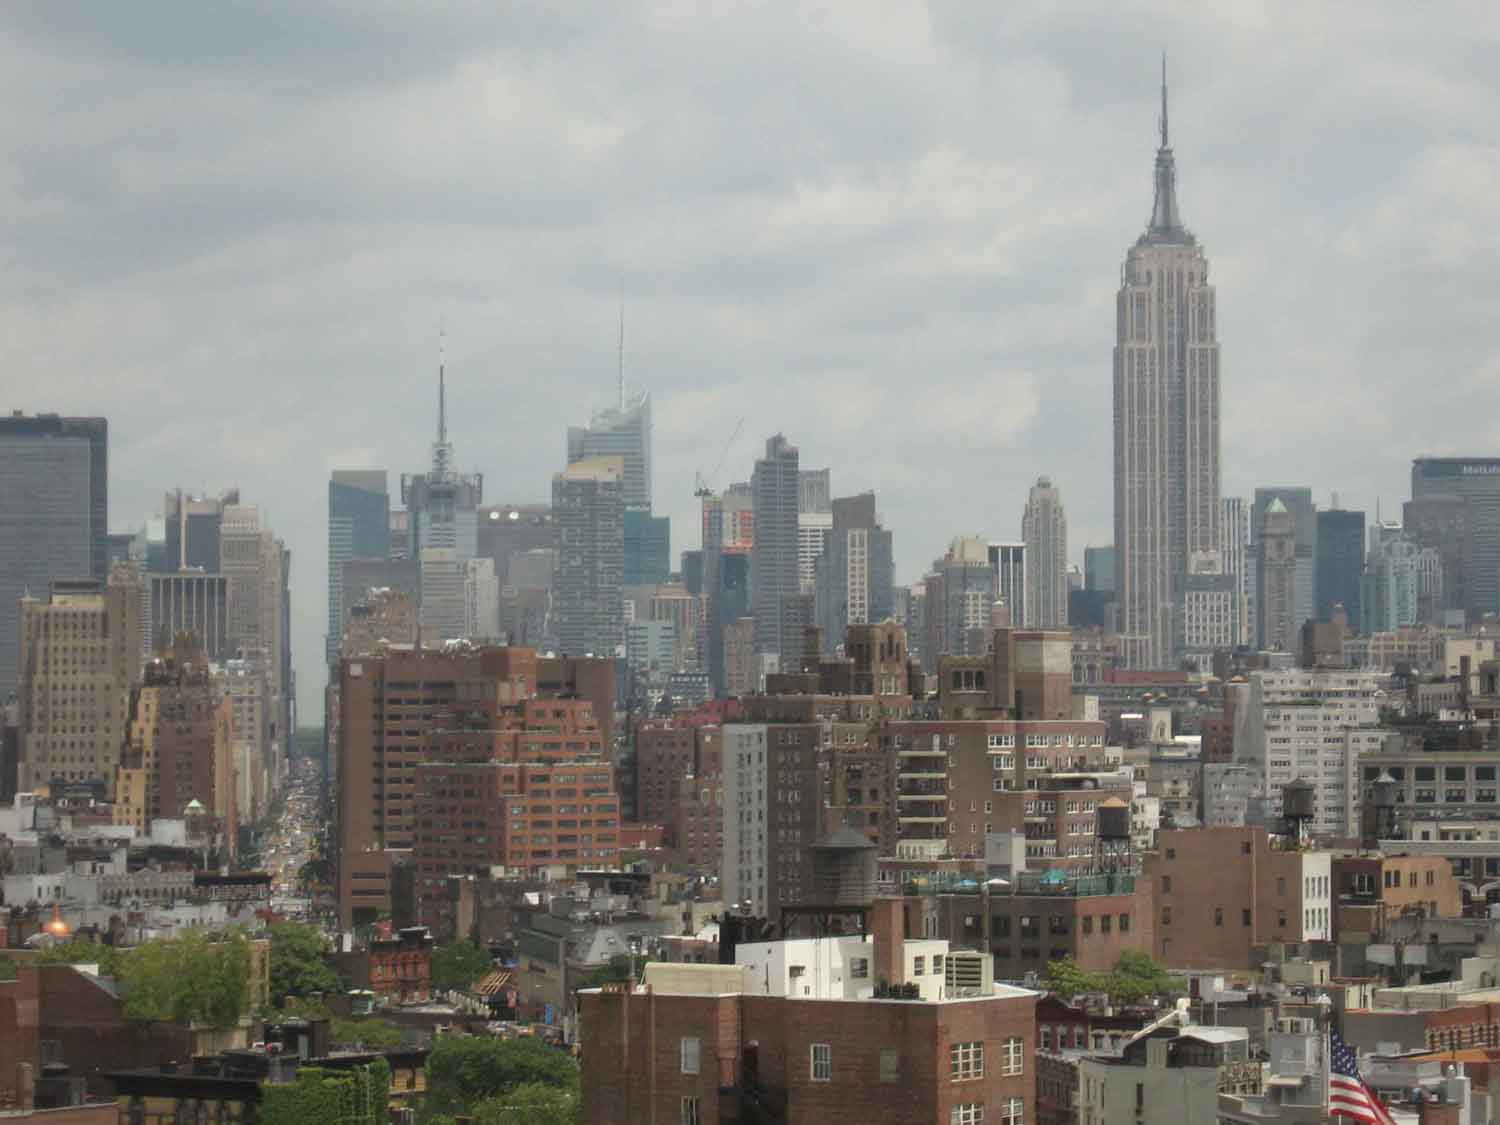 View of downtown New York City from the Textual Research Room